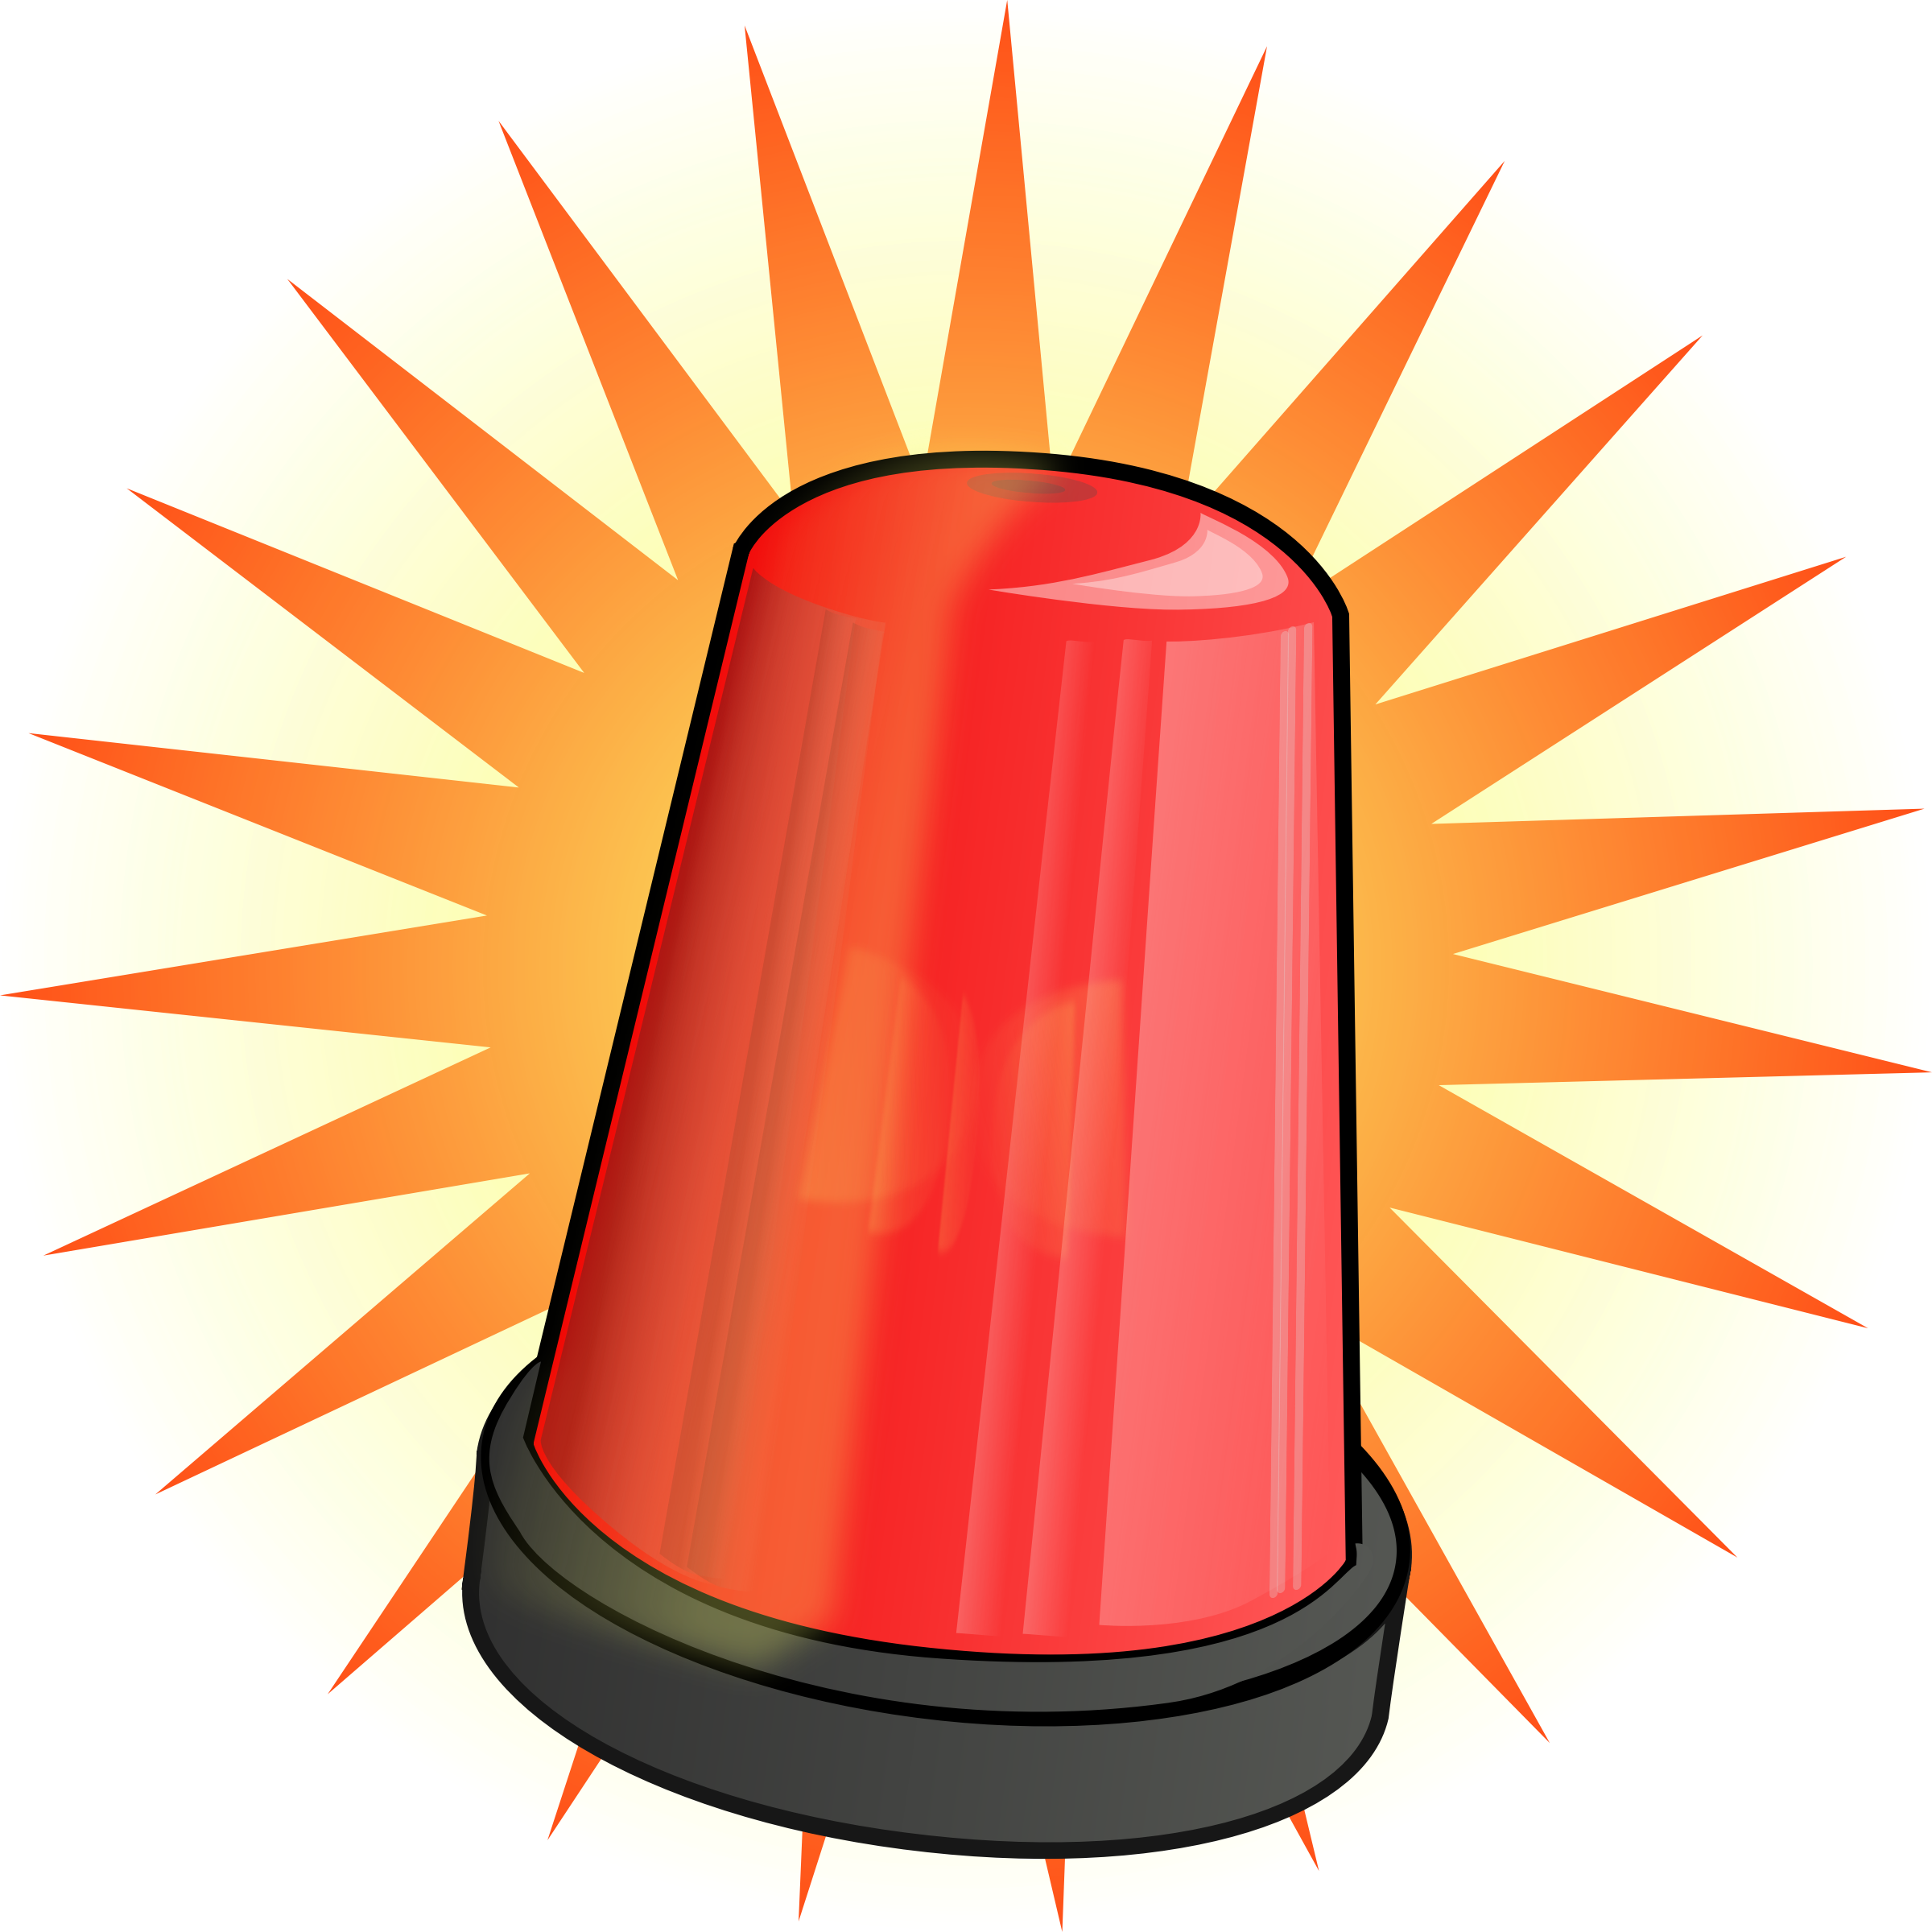 vector freeuse stock Log clipart red. Signal light big image.